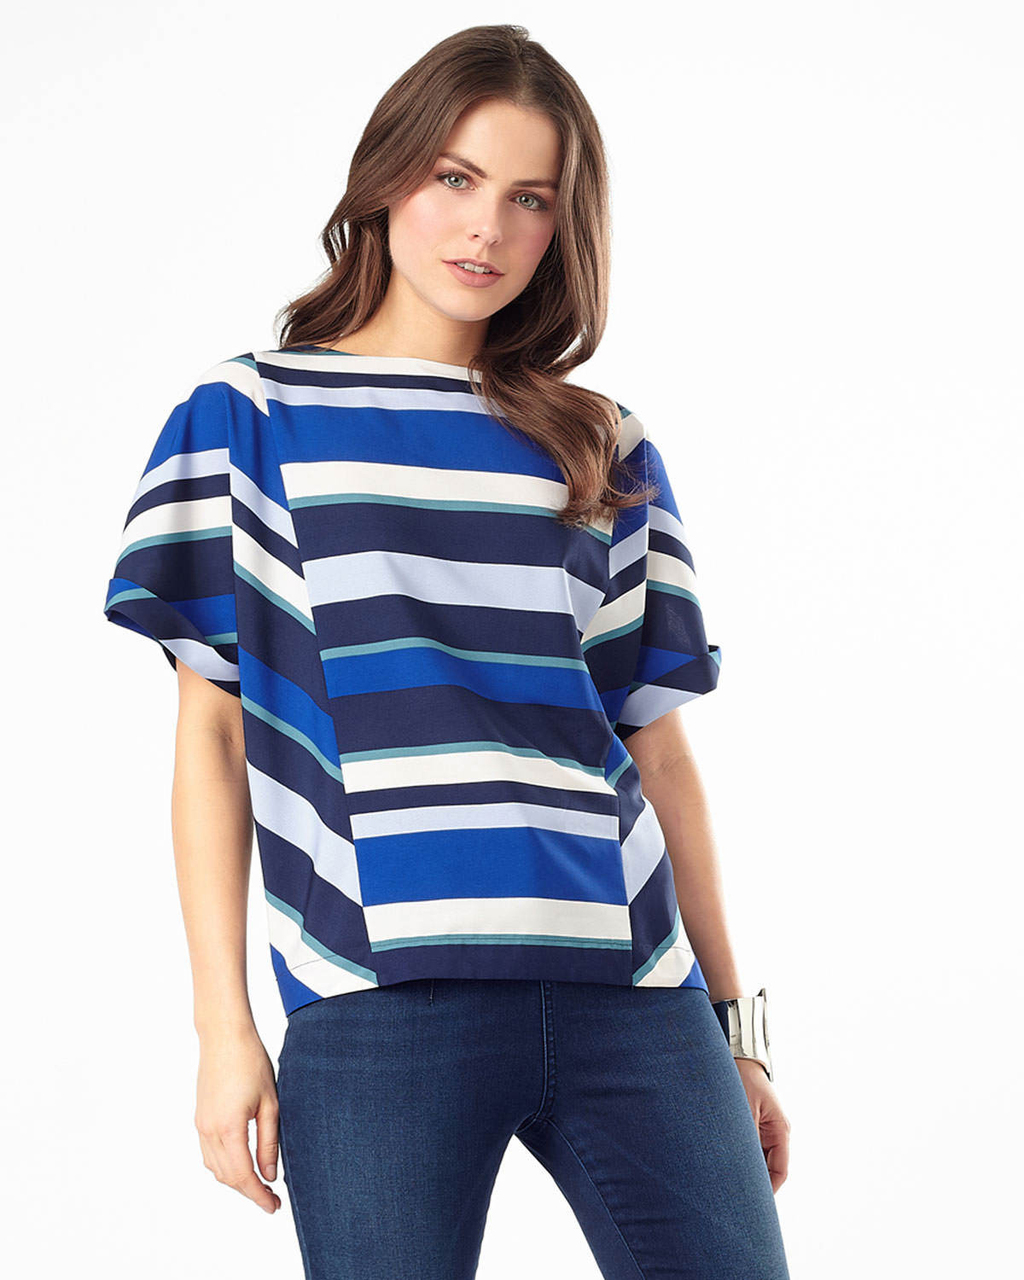 Frida Stripe Blouse - neckline: slash/boat neckline; sleeve style: capped; pattern: striped; secondary colour: white; predominant colour: royal blue; occasions: casual, creative work; length: standard; style: top; fibres: polyester/polyamide - 100%; fit: straight cut; sleeve length: short sleeve; pattern type: fabric; pattern size: standard; texture group: woven light midweight; multicoloured: multicoloured; season: a/w 2015; wardrobe: highlight